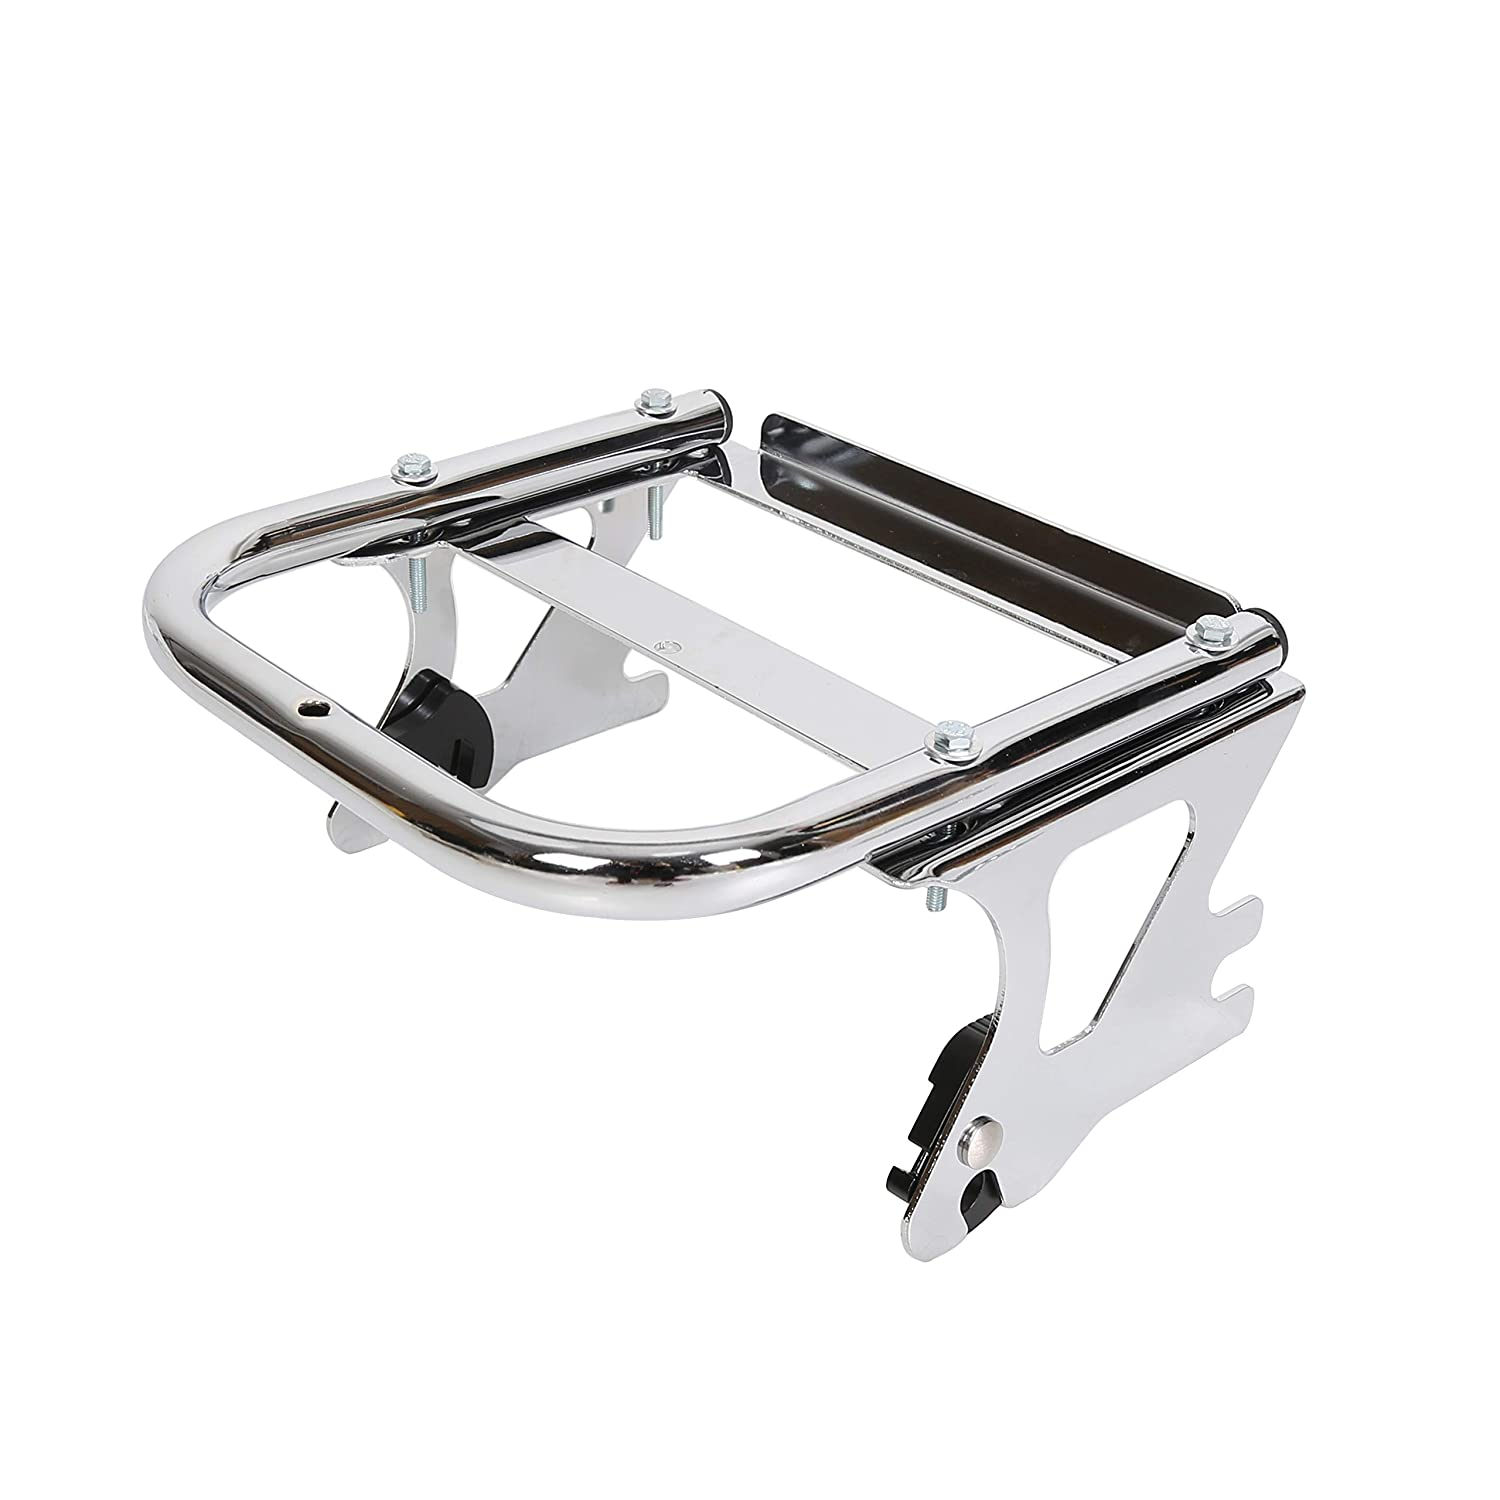 Motors Black Detachable Two Up Tour Pack Mounting Luggage Rack For Harley Touring 97-08 Motorcycle Accessories